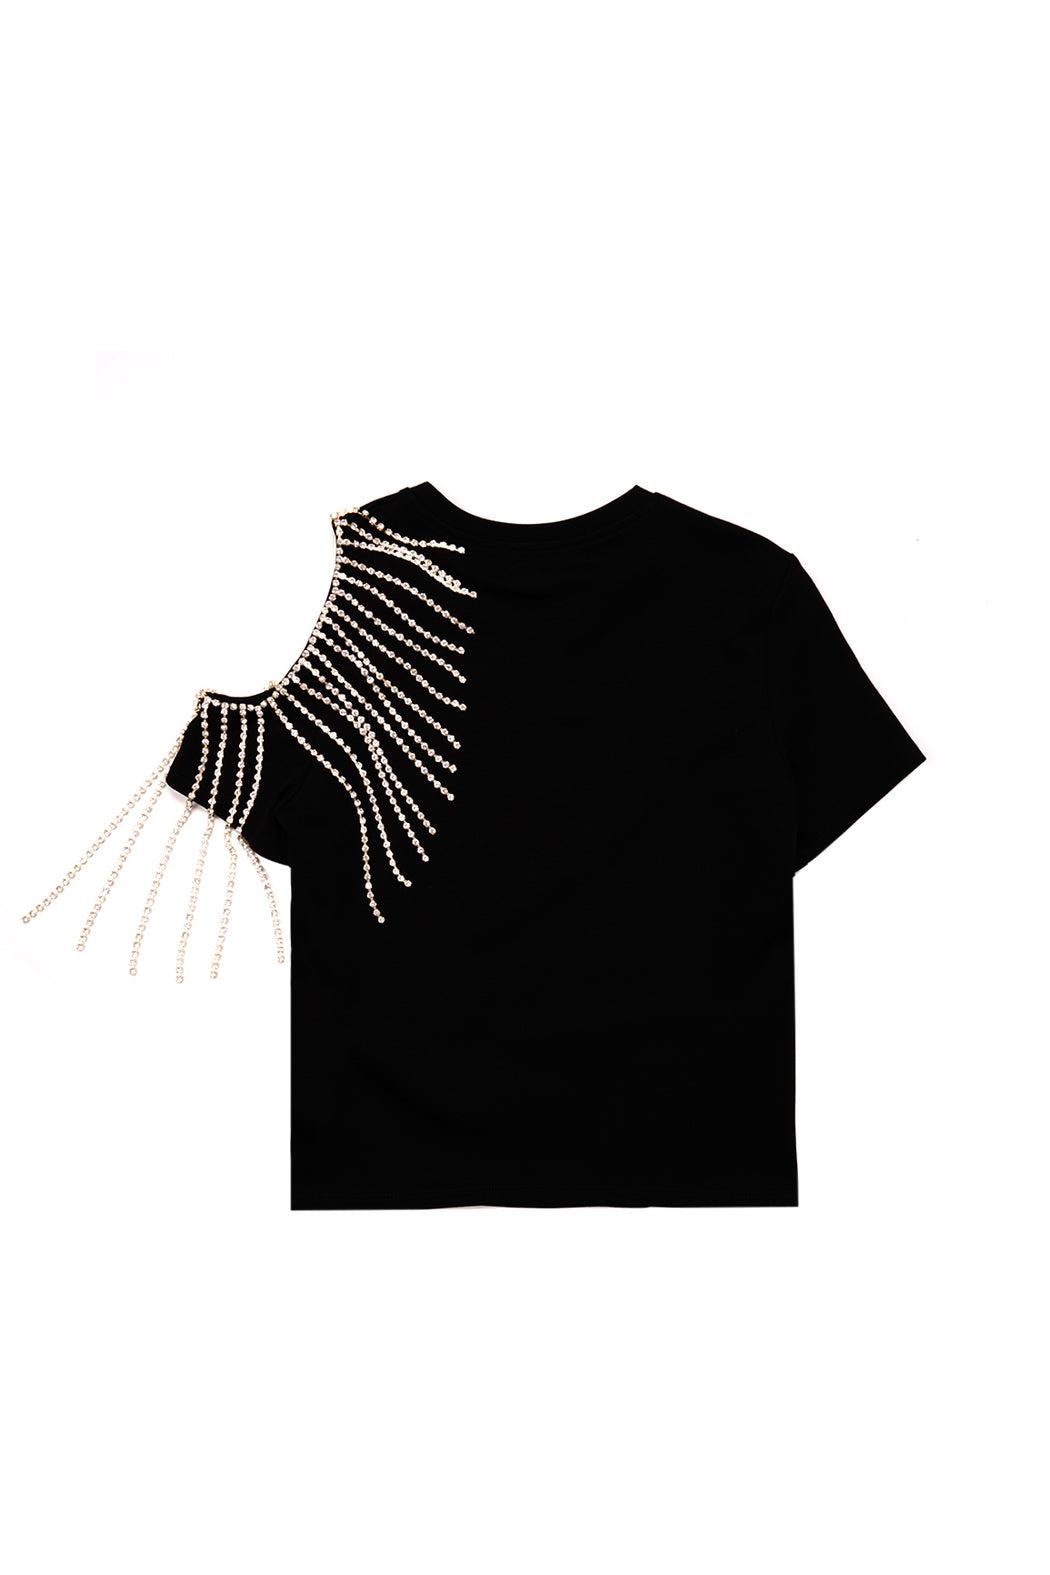 Crystal Fringe Shoulder Cutout Tee - Black